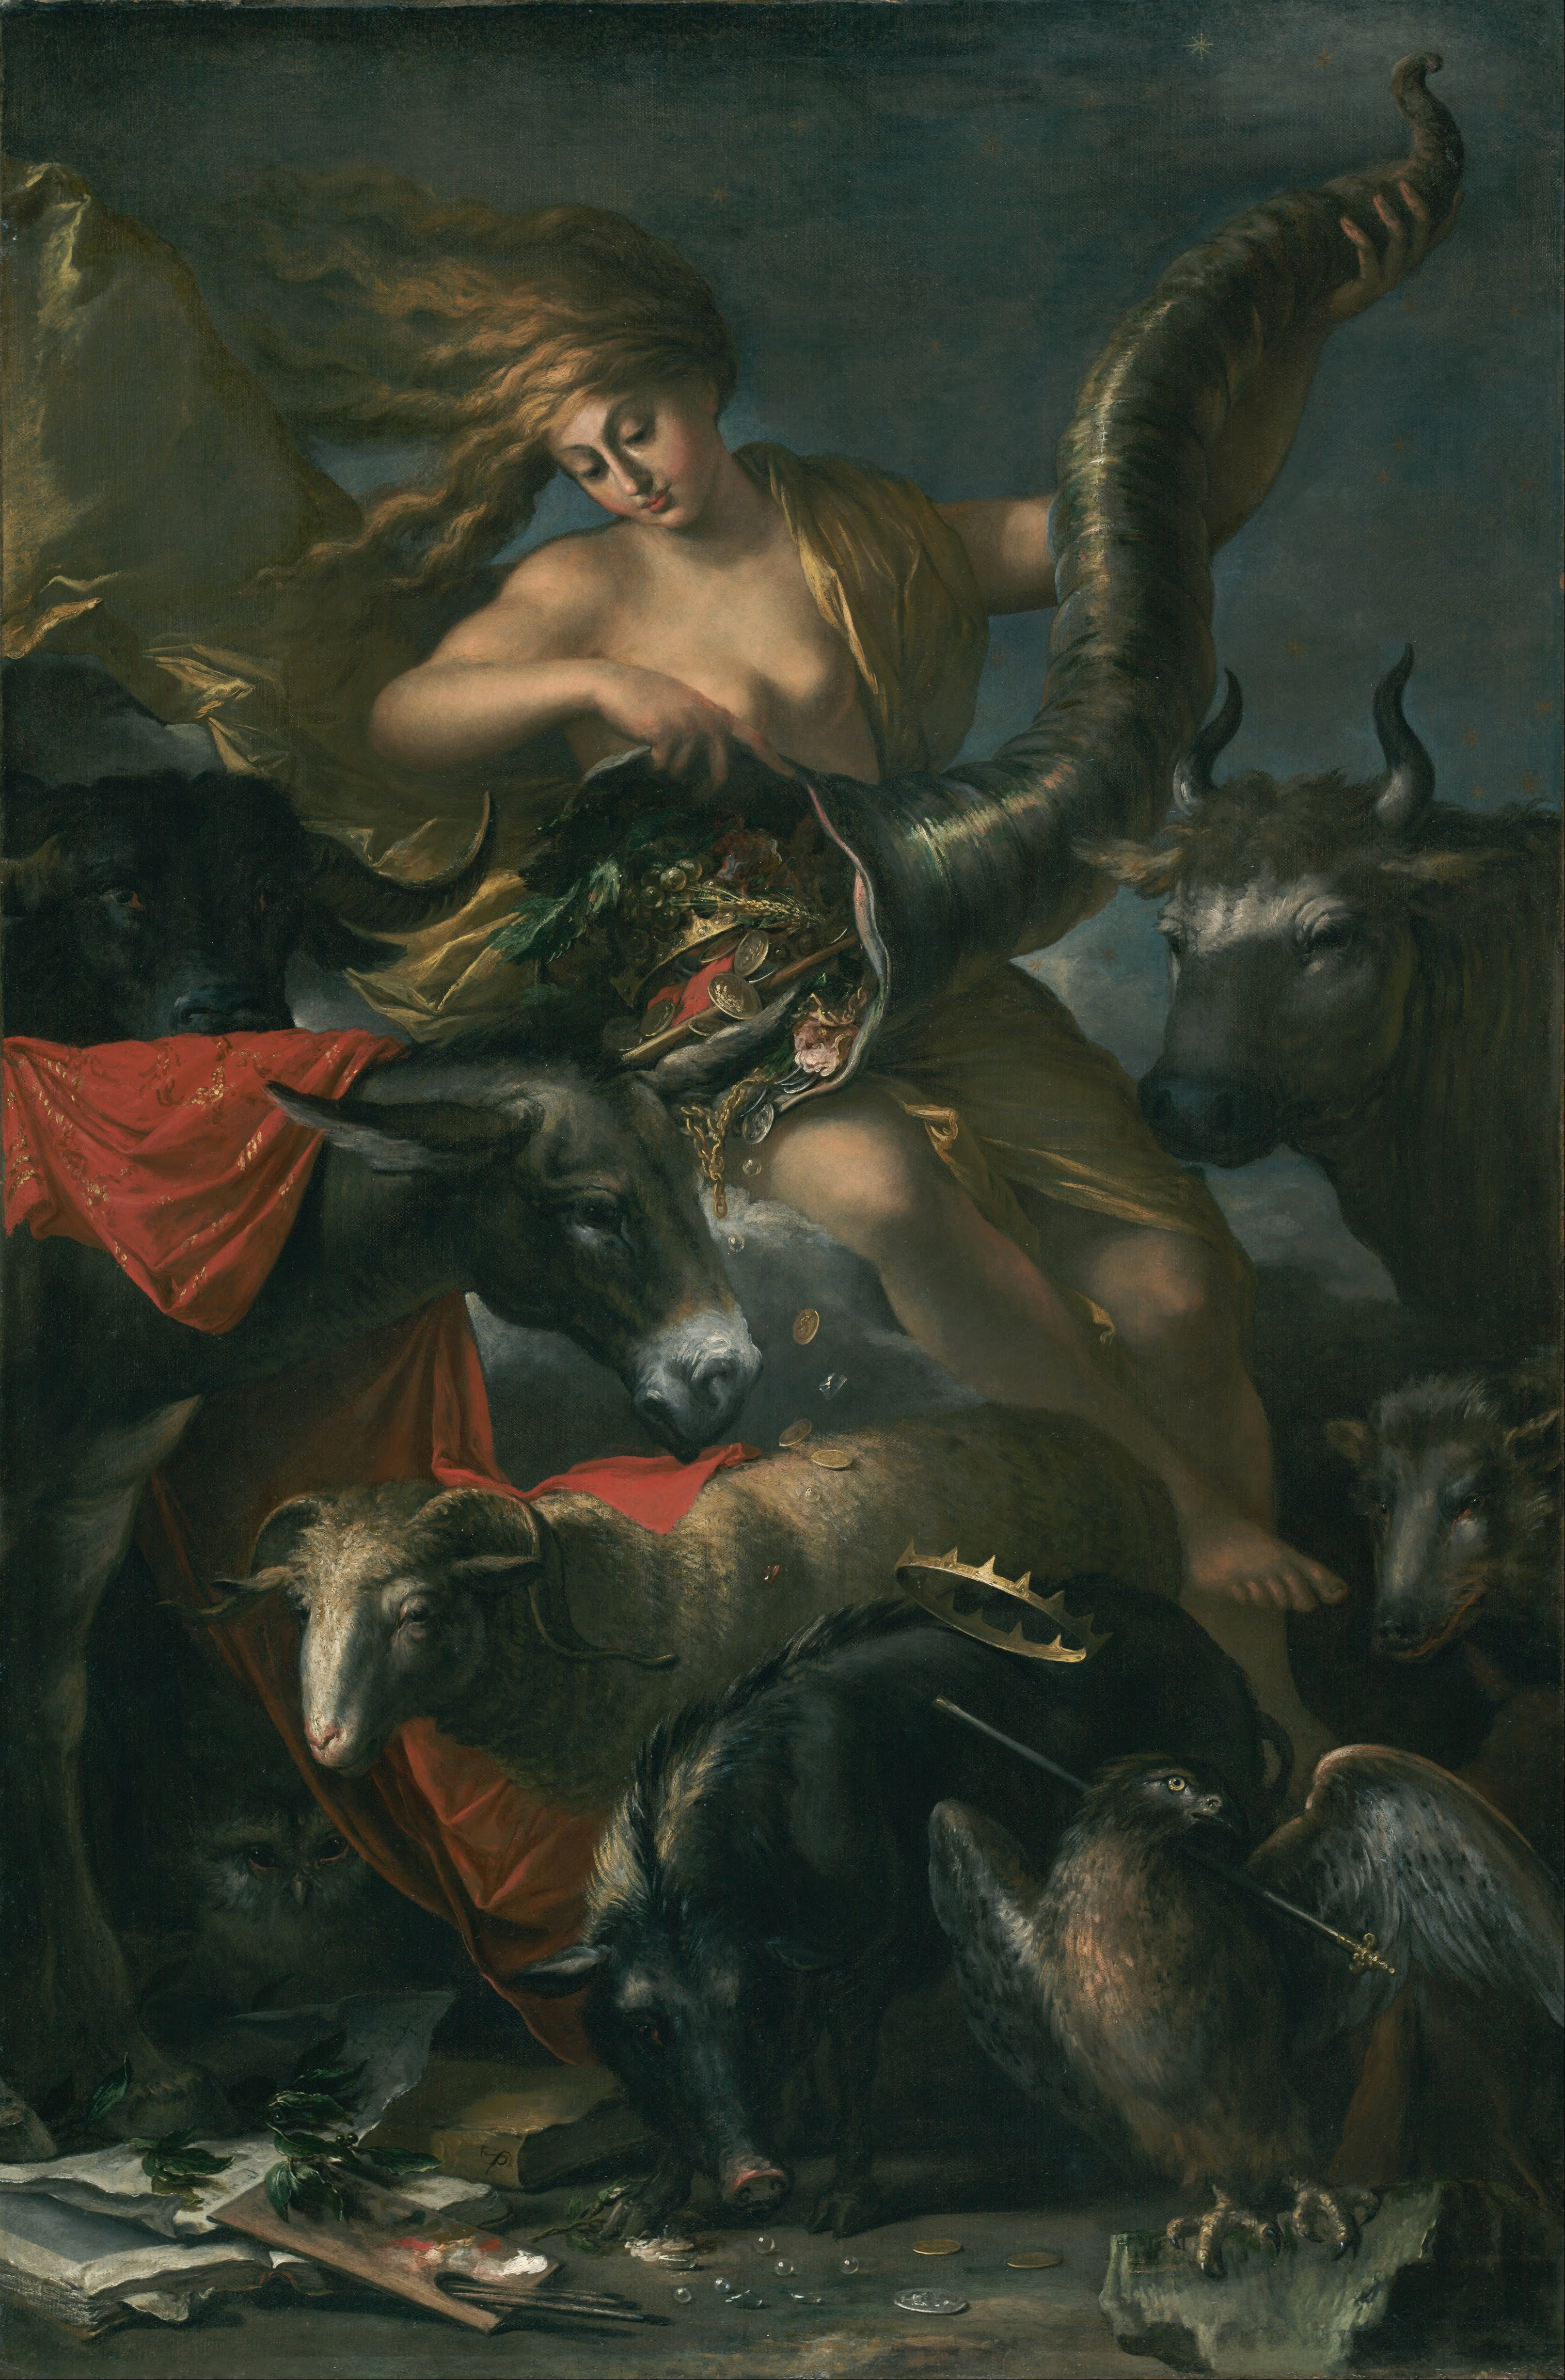 Animal Imagery In the Pearl Lovely Allegory Of fortune La fortuna Salvator Rosa Oil On